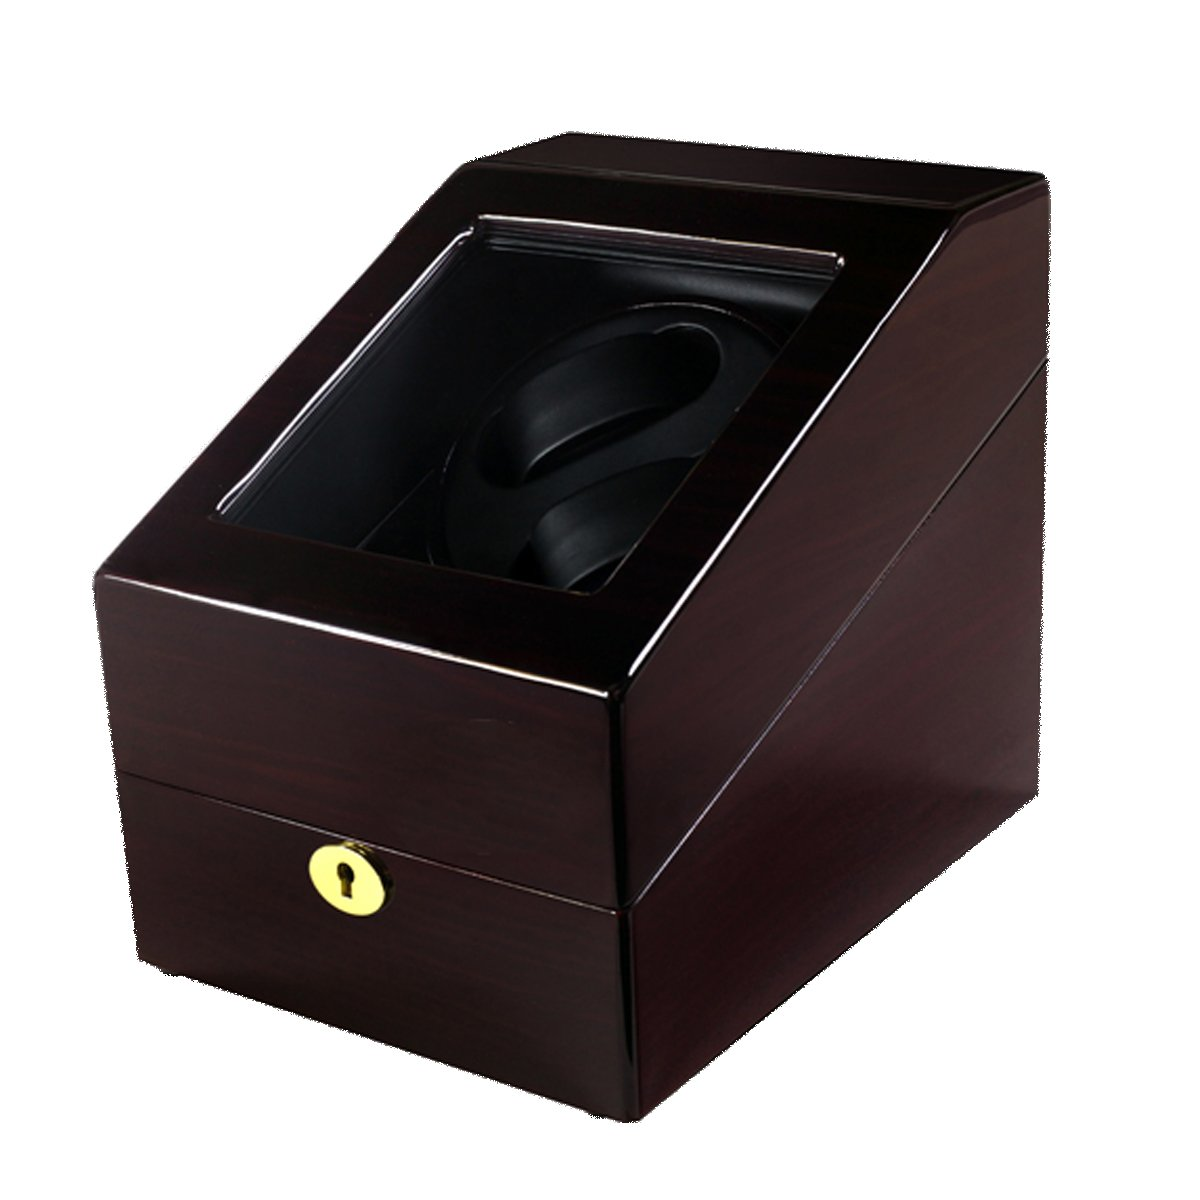 2+3 Automatic Watch Winder Box in Brown Luxury Spinning Watch Holder Wood Panel Hand Polished Piano Paint